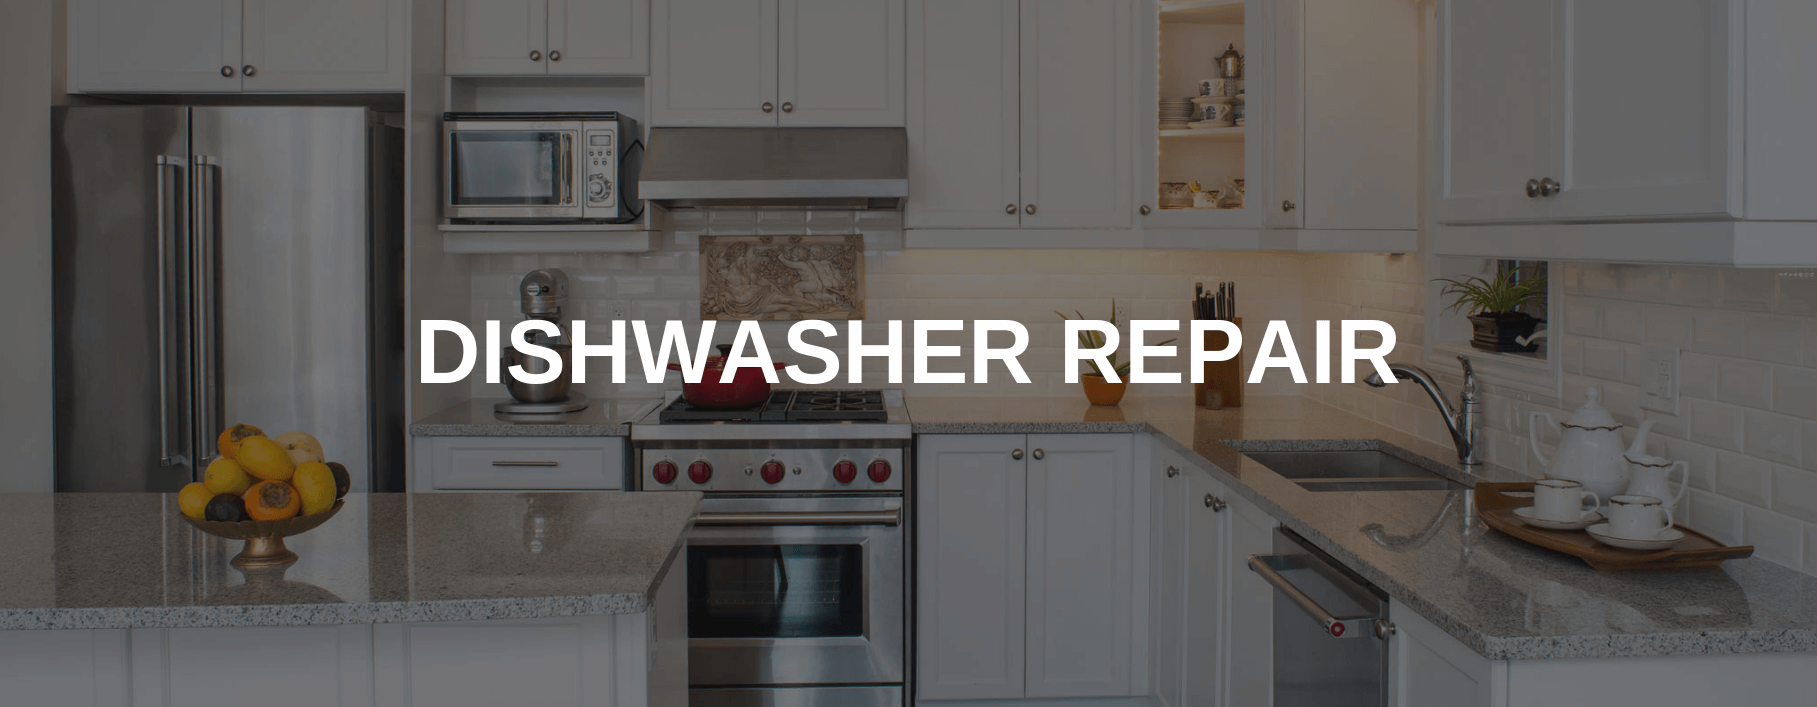 dishwasher repair milothian